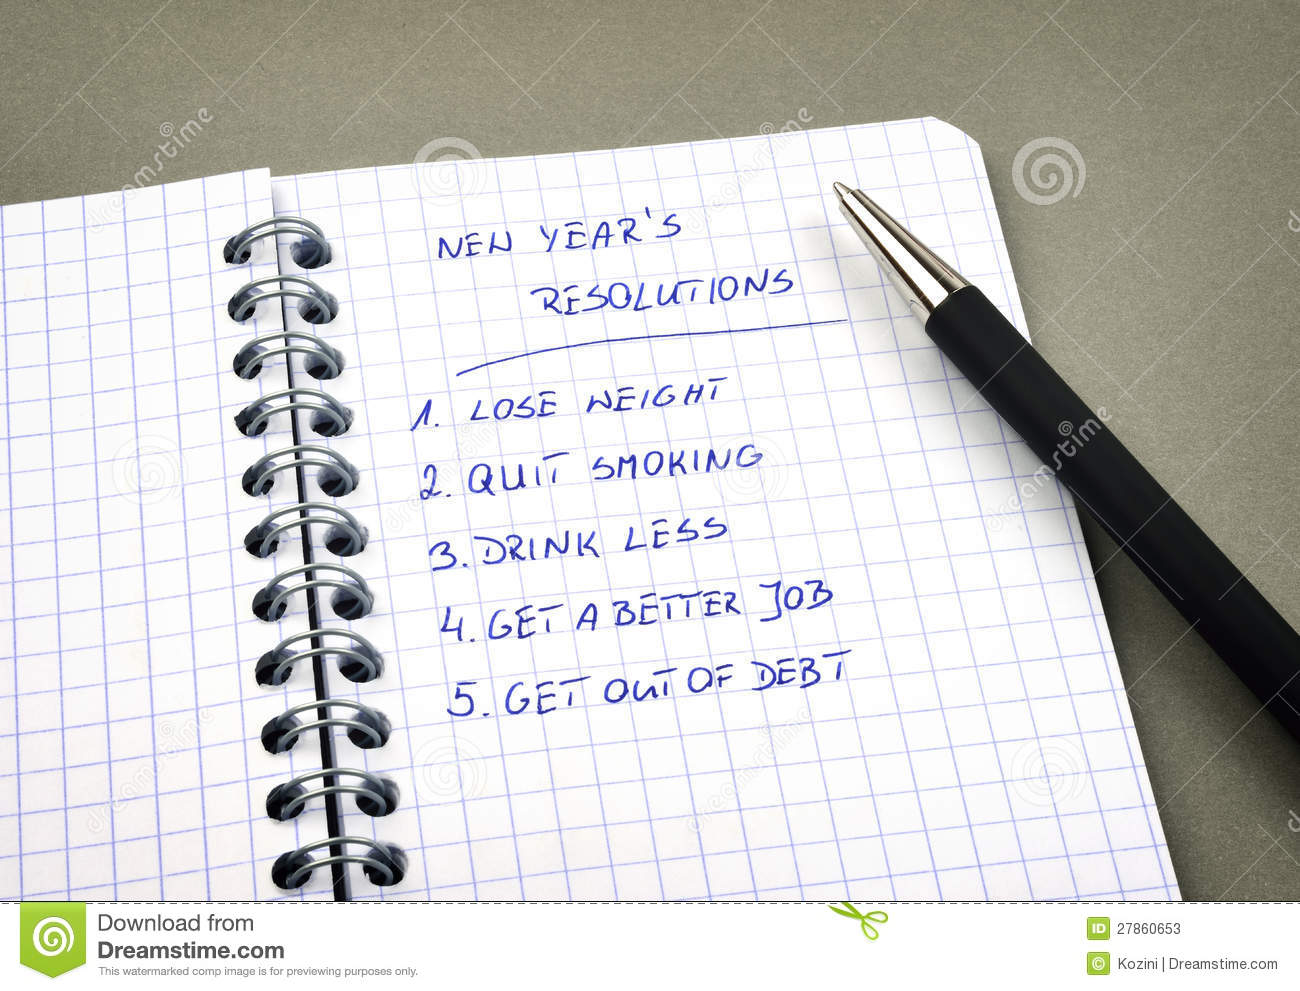 New Year s resolutions listed